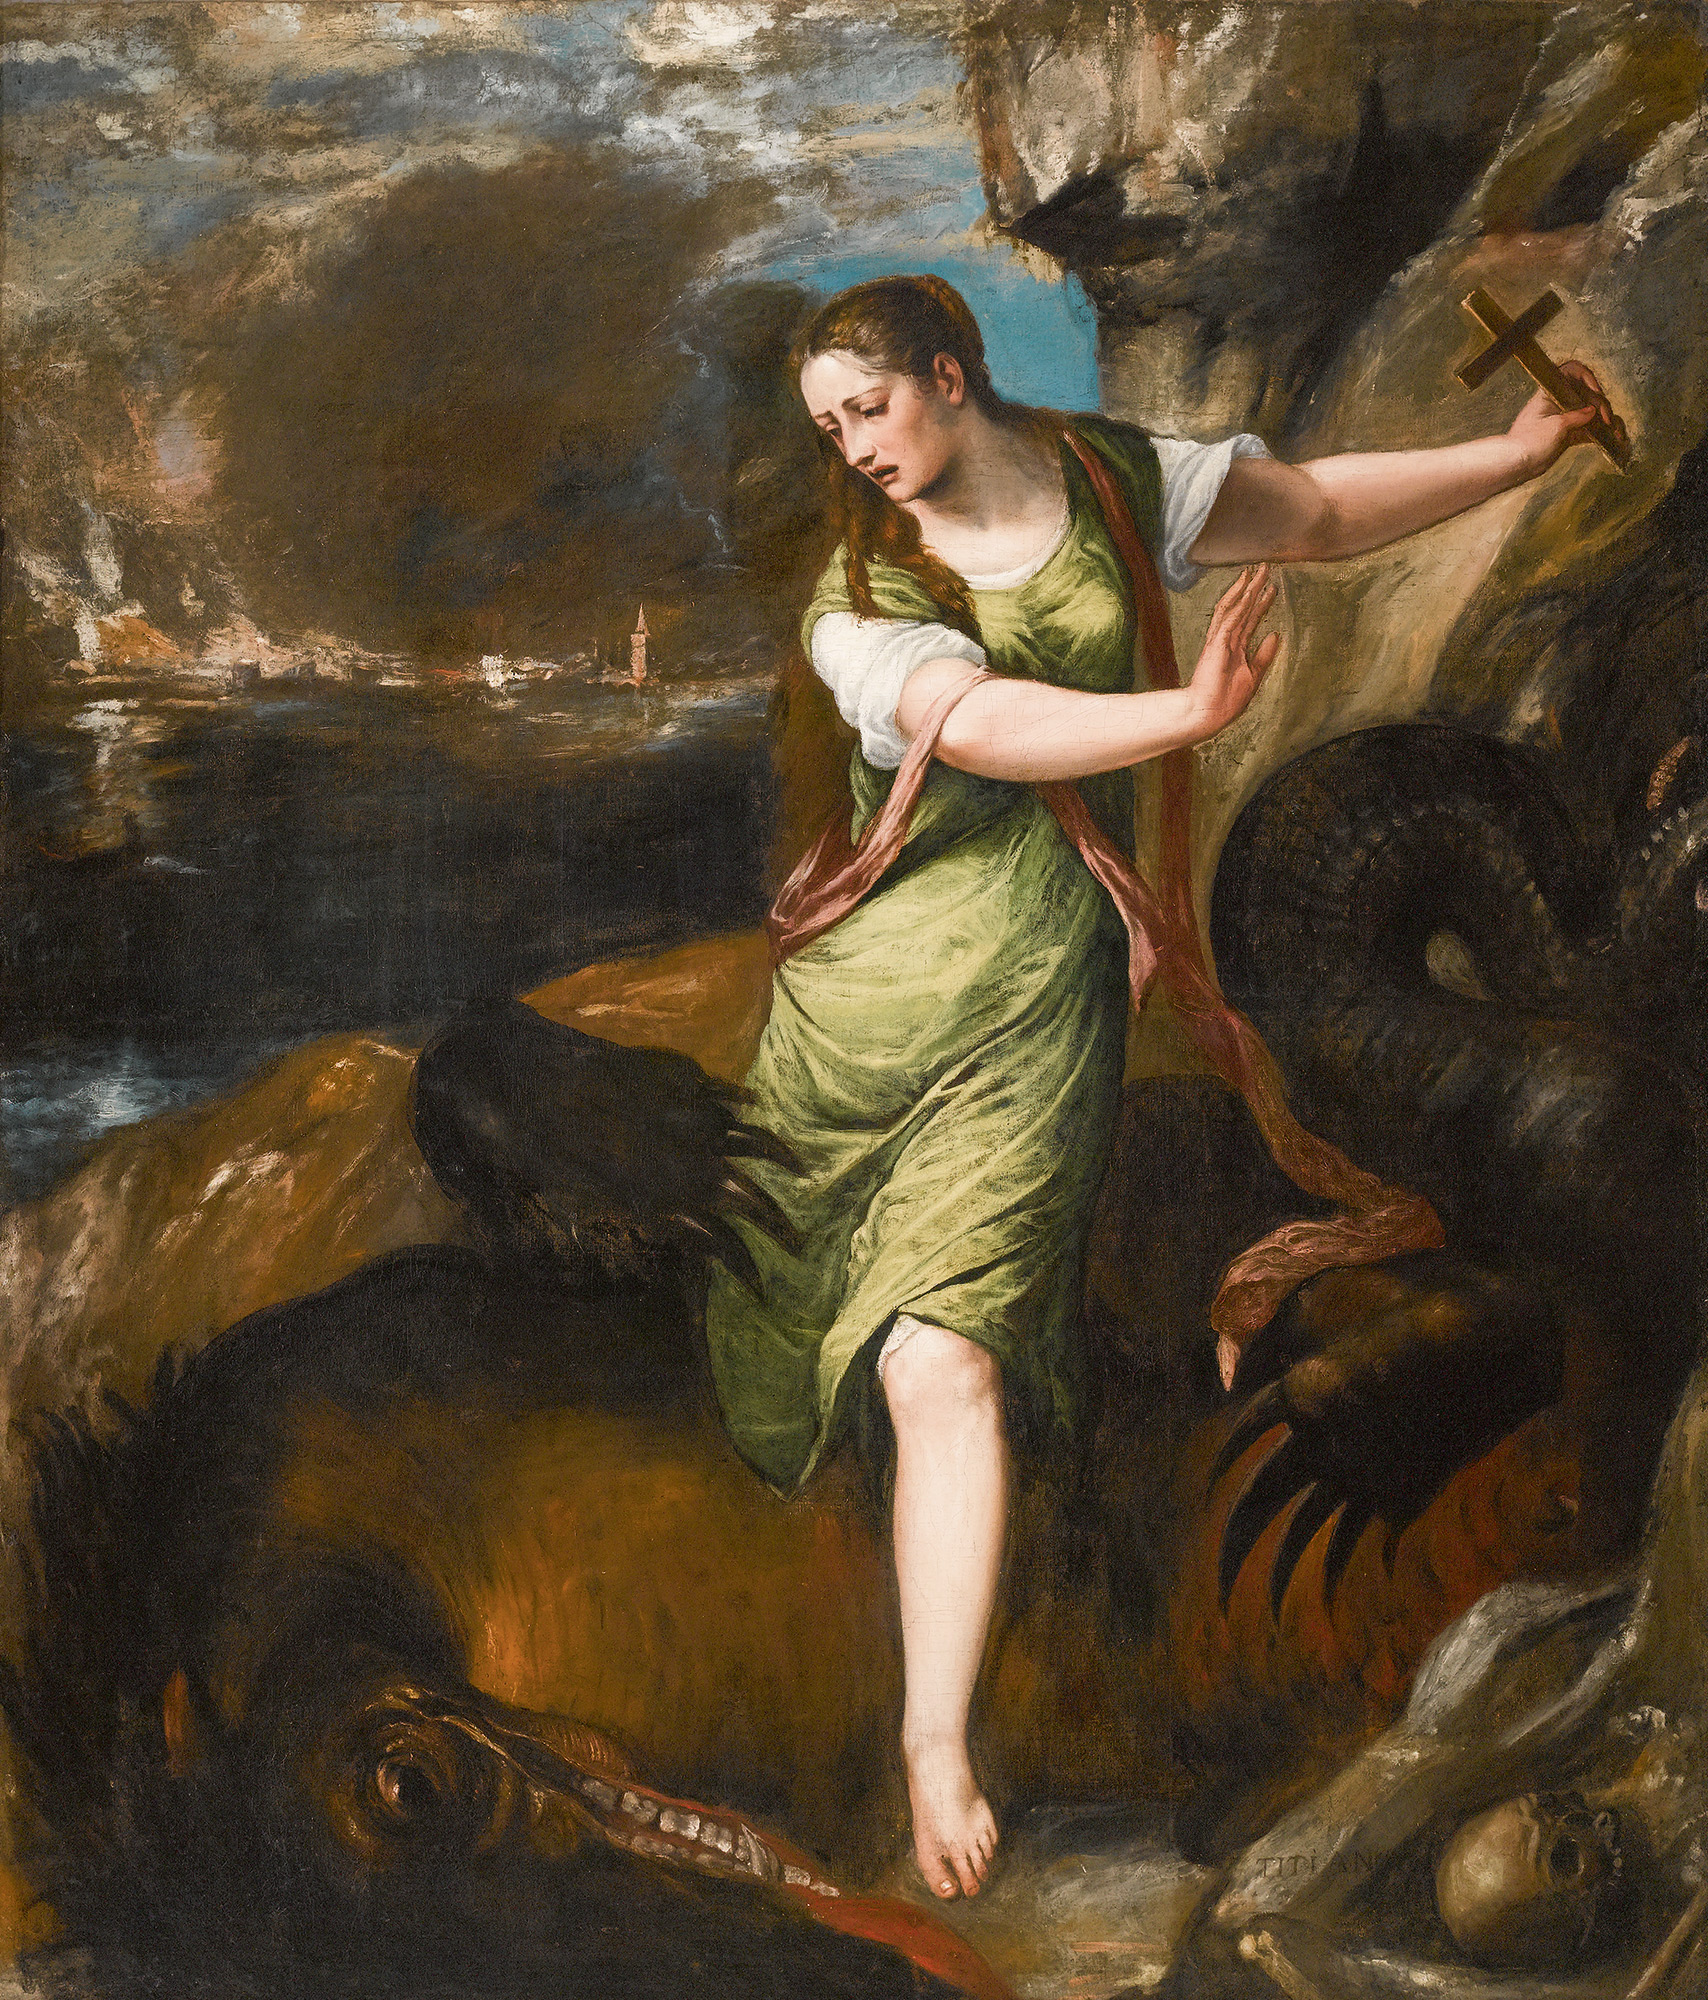 Old master Sotheby's -Tiziano Vecellio, called Titian, and Workshop, Saint Margaret. Estimate $2,000,000–3,000,000.